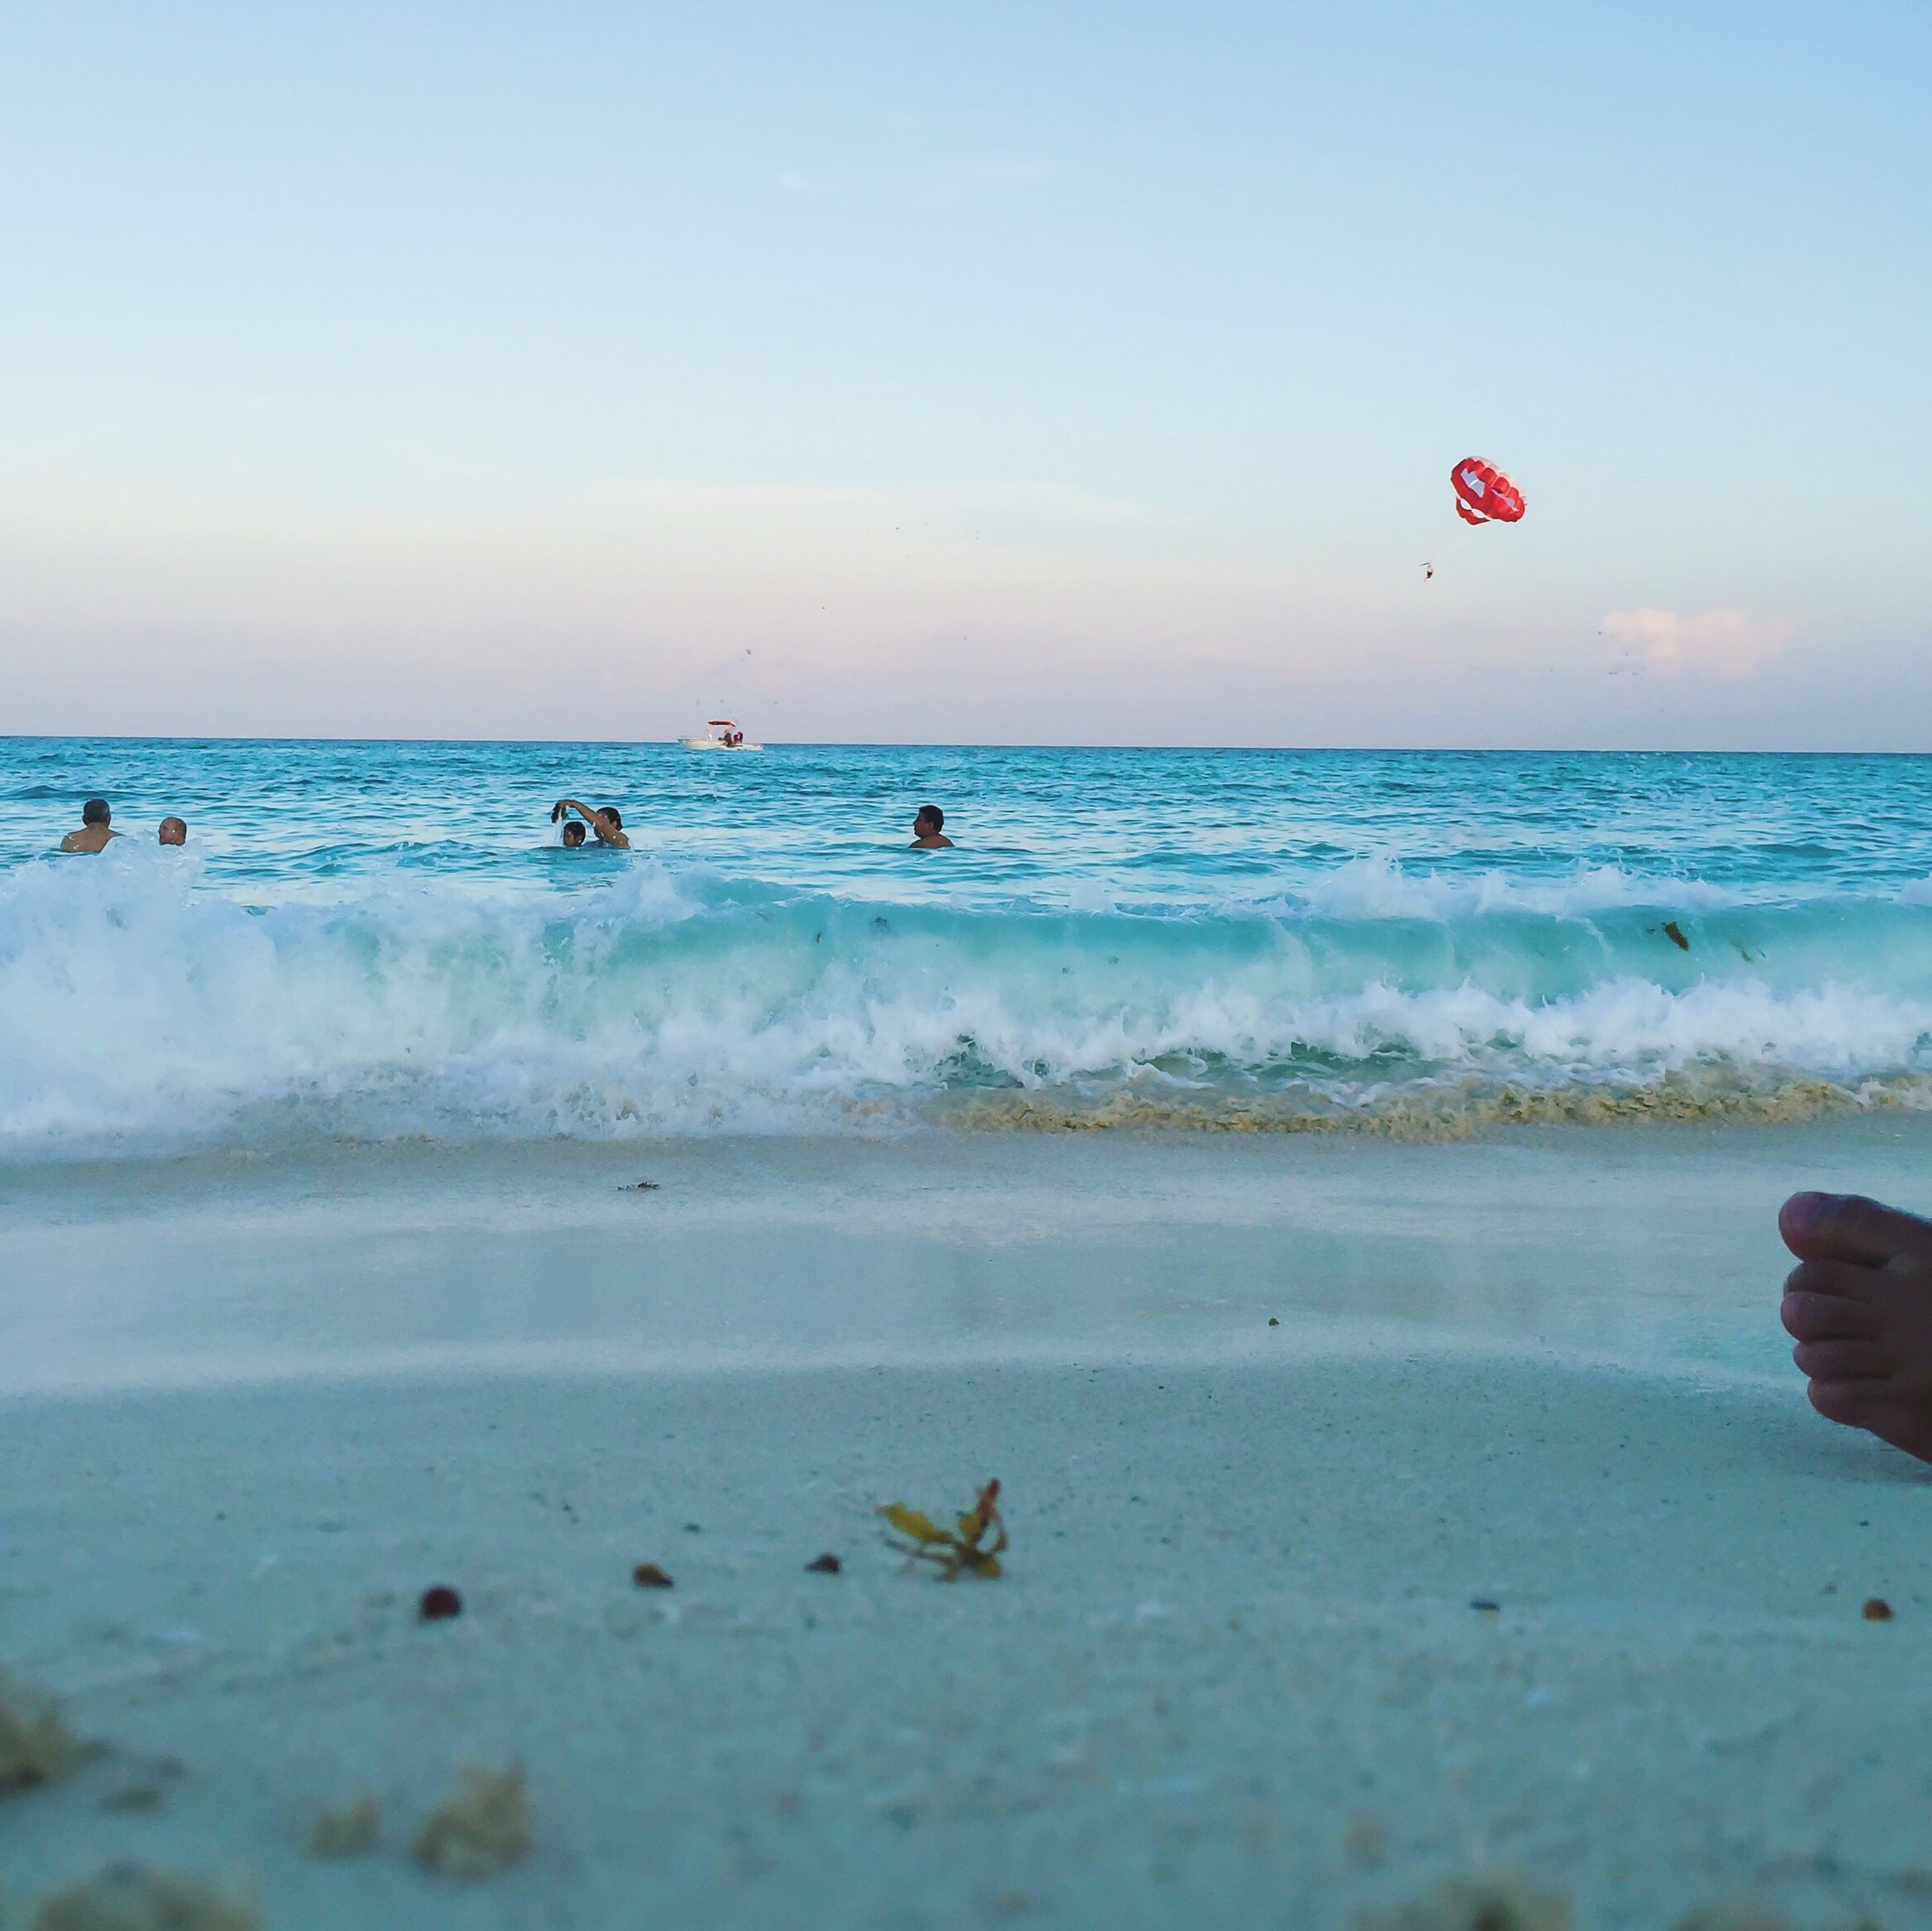 sea, horizon over water, beach, water, shore, leisure activity, sky, vacations, wave, lifestyles, sand, scenics, beauty in nature, enjoyment, flying, unrecognizable person, nature, tranquility, water sport